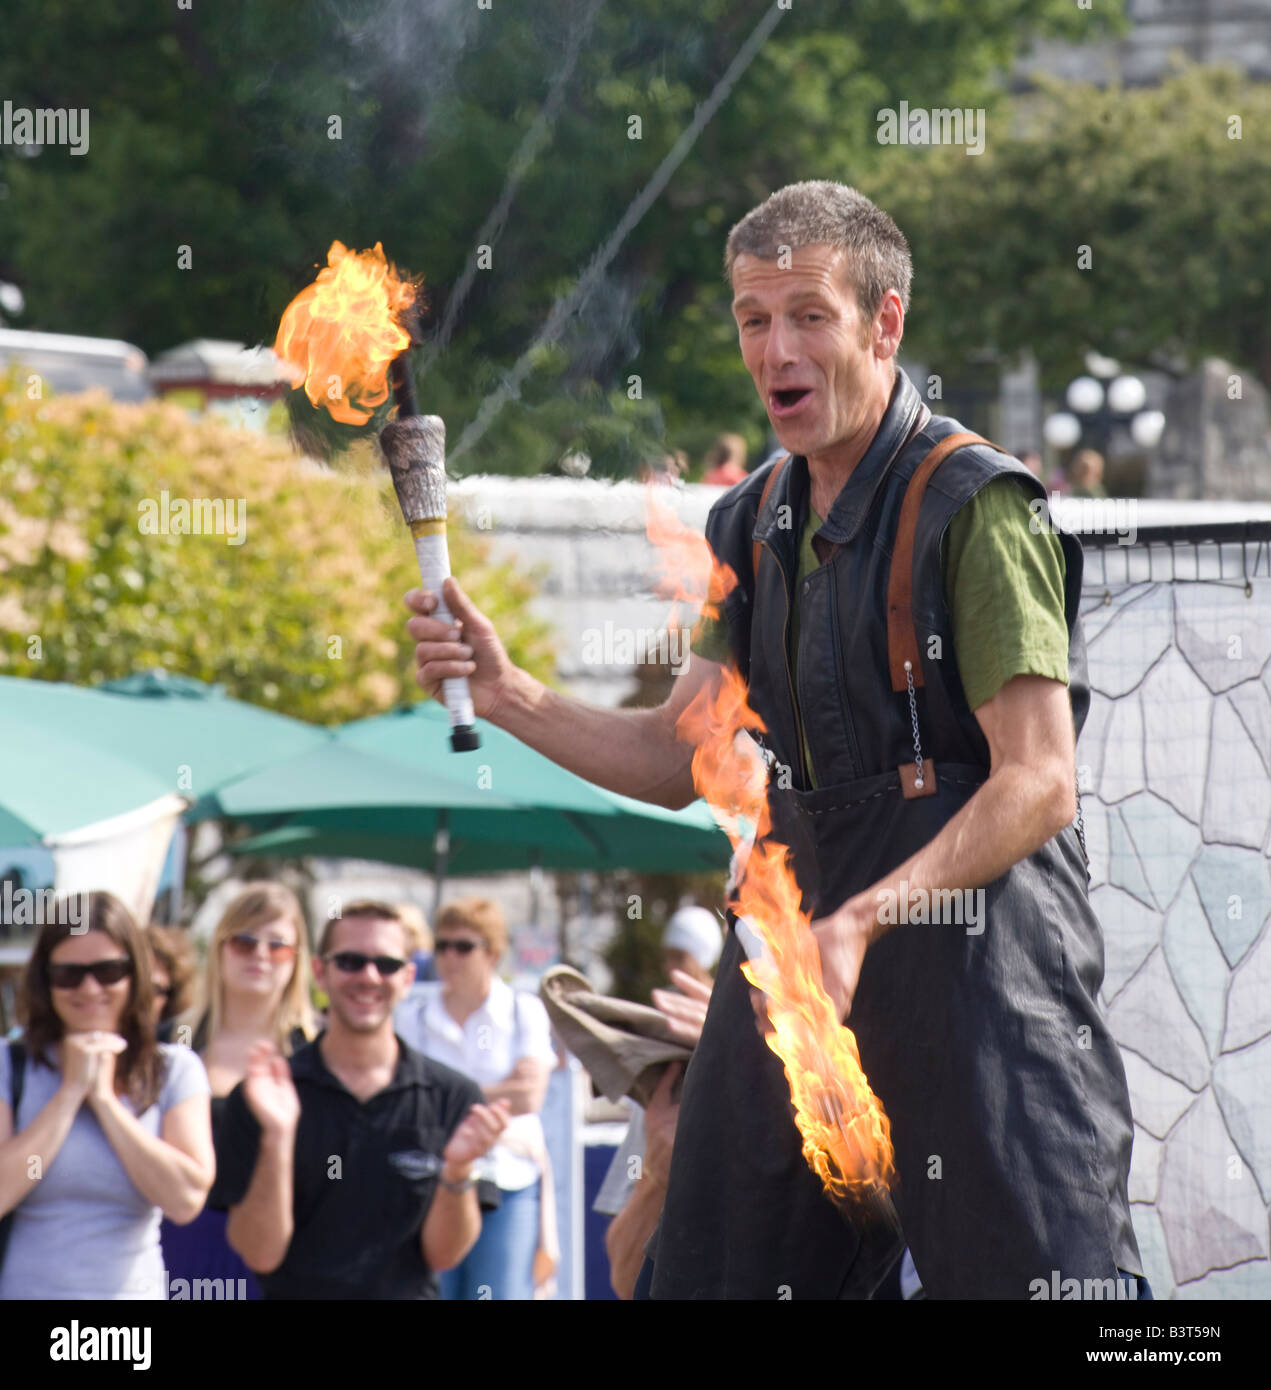 street artist on stilts with fire sticks at harbourfront, Victoria, Vancouver Island, British Columbia, Canada - Stock Image